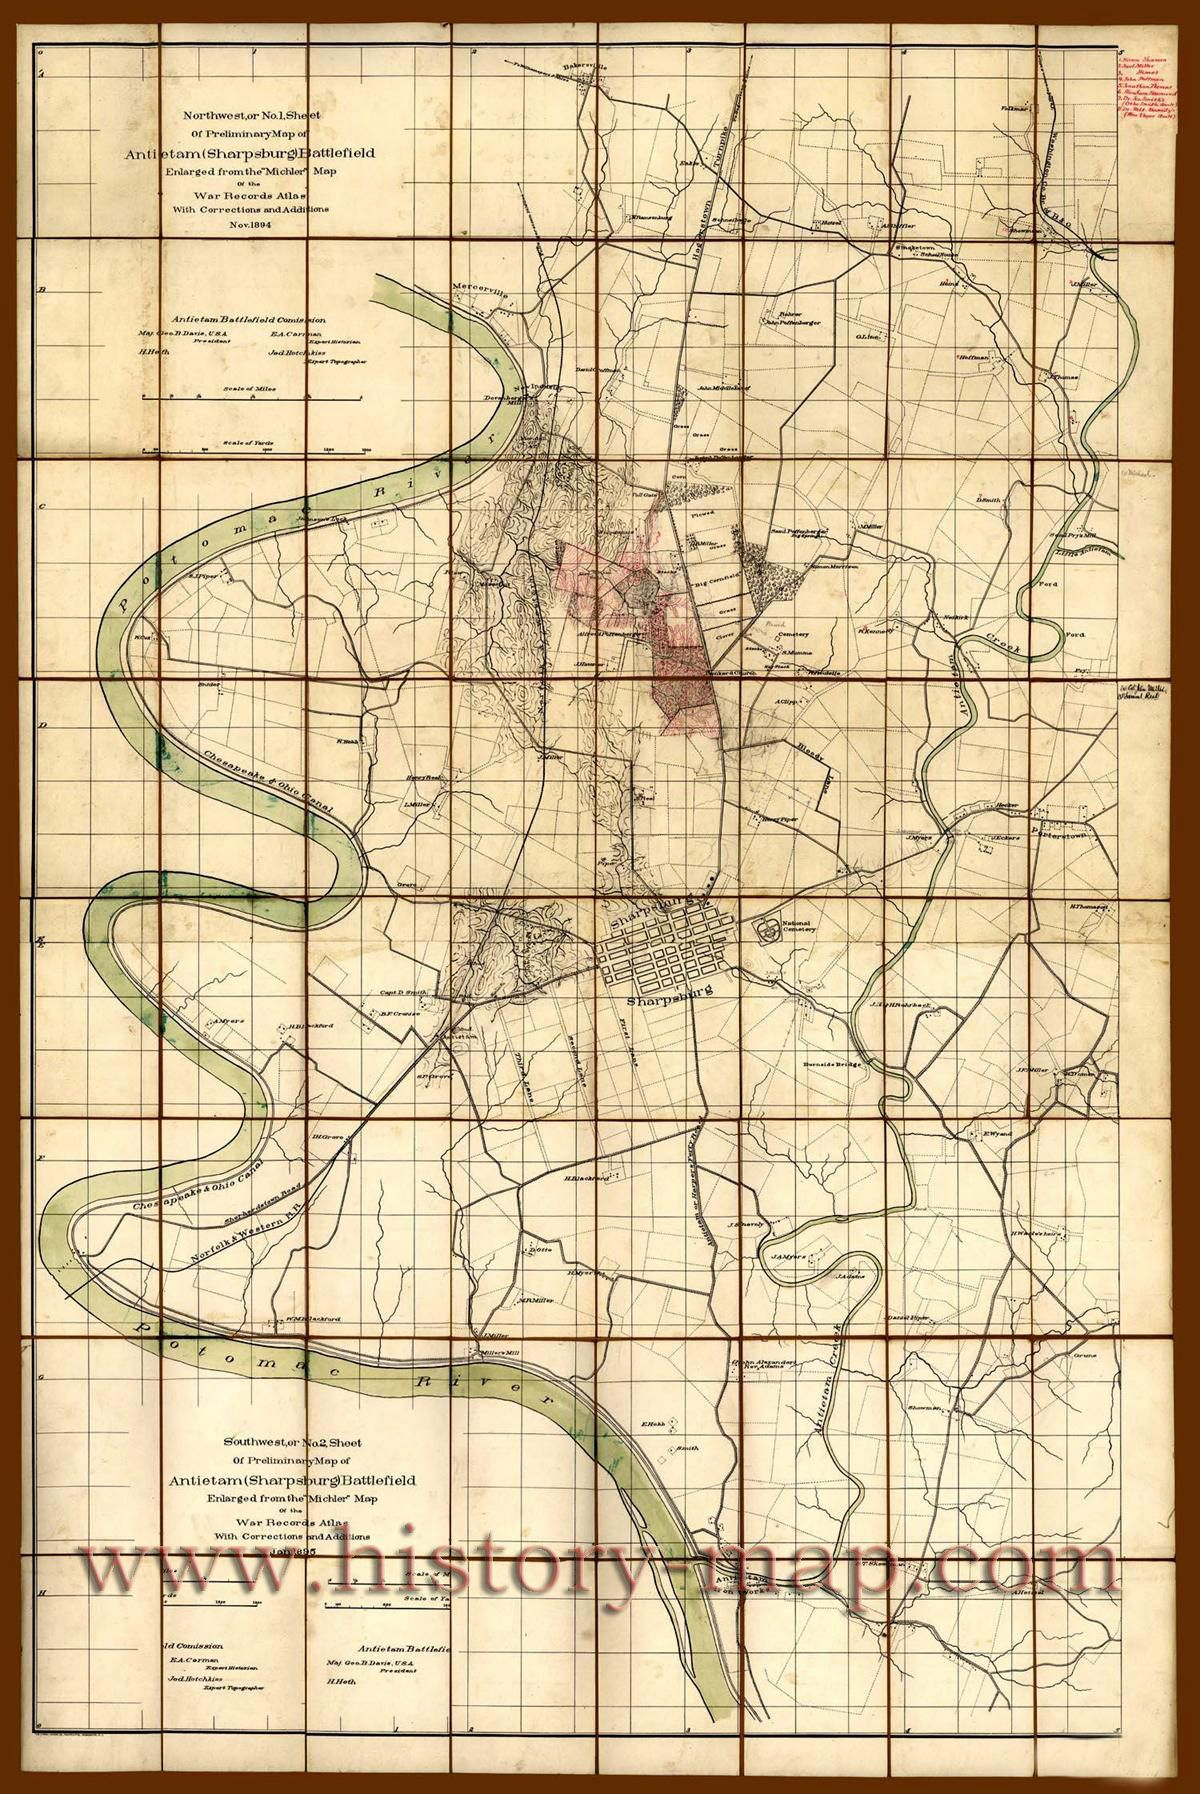 Mapchart Of Antietam Sharpsburg Battlefield It Was Made By - Any us map in battlefield series